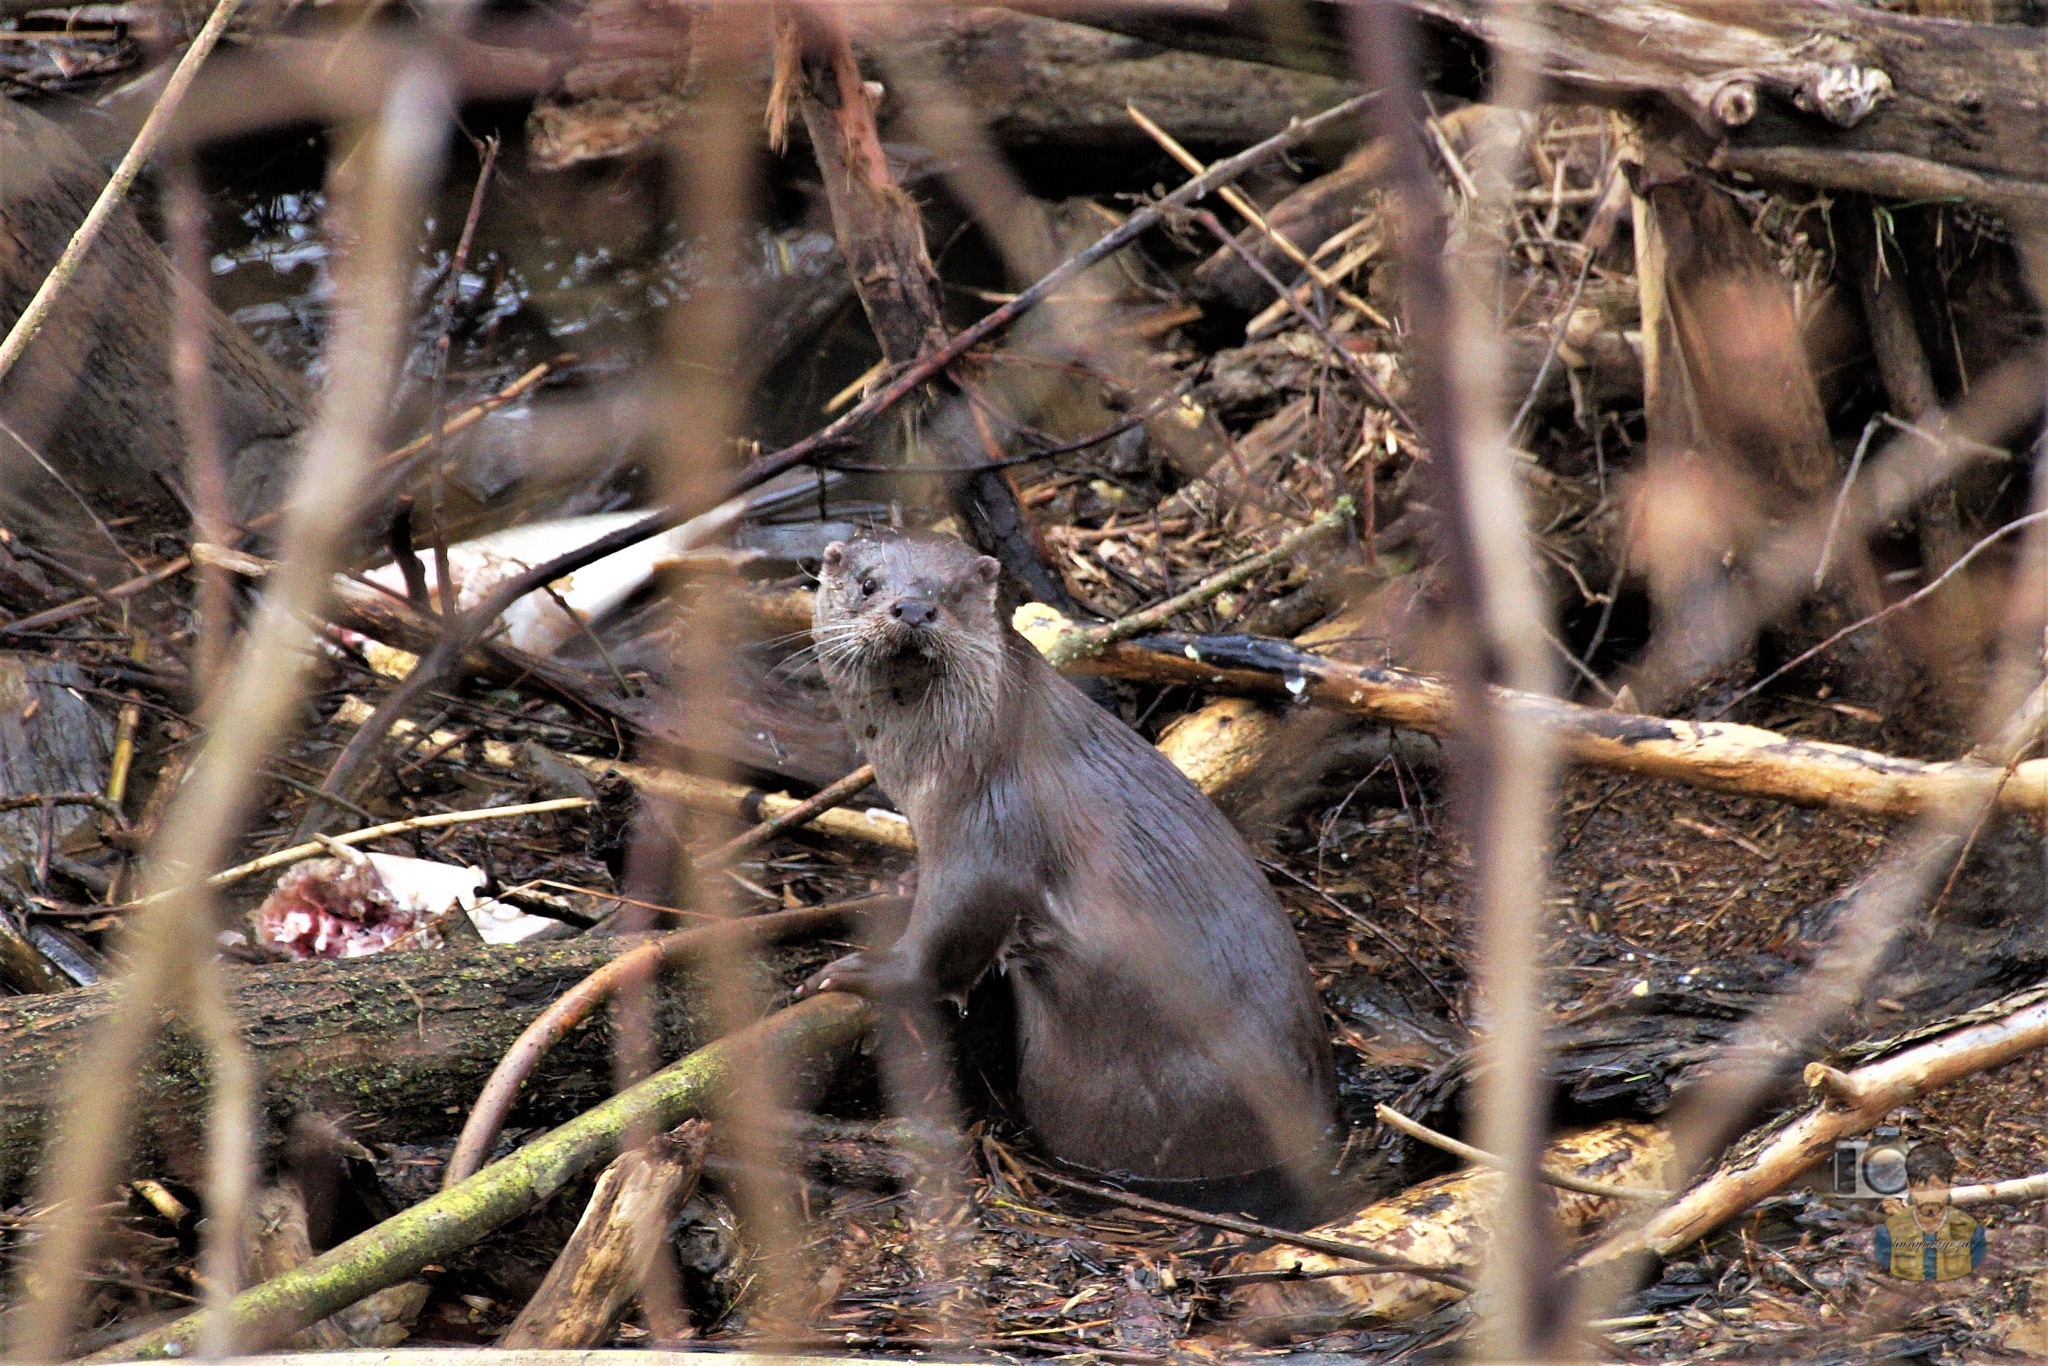 February 13, yesterday, The otter on driftwood with fish by hunyadigeza